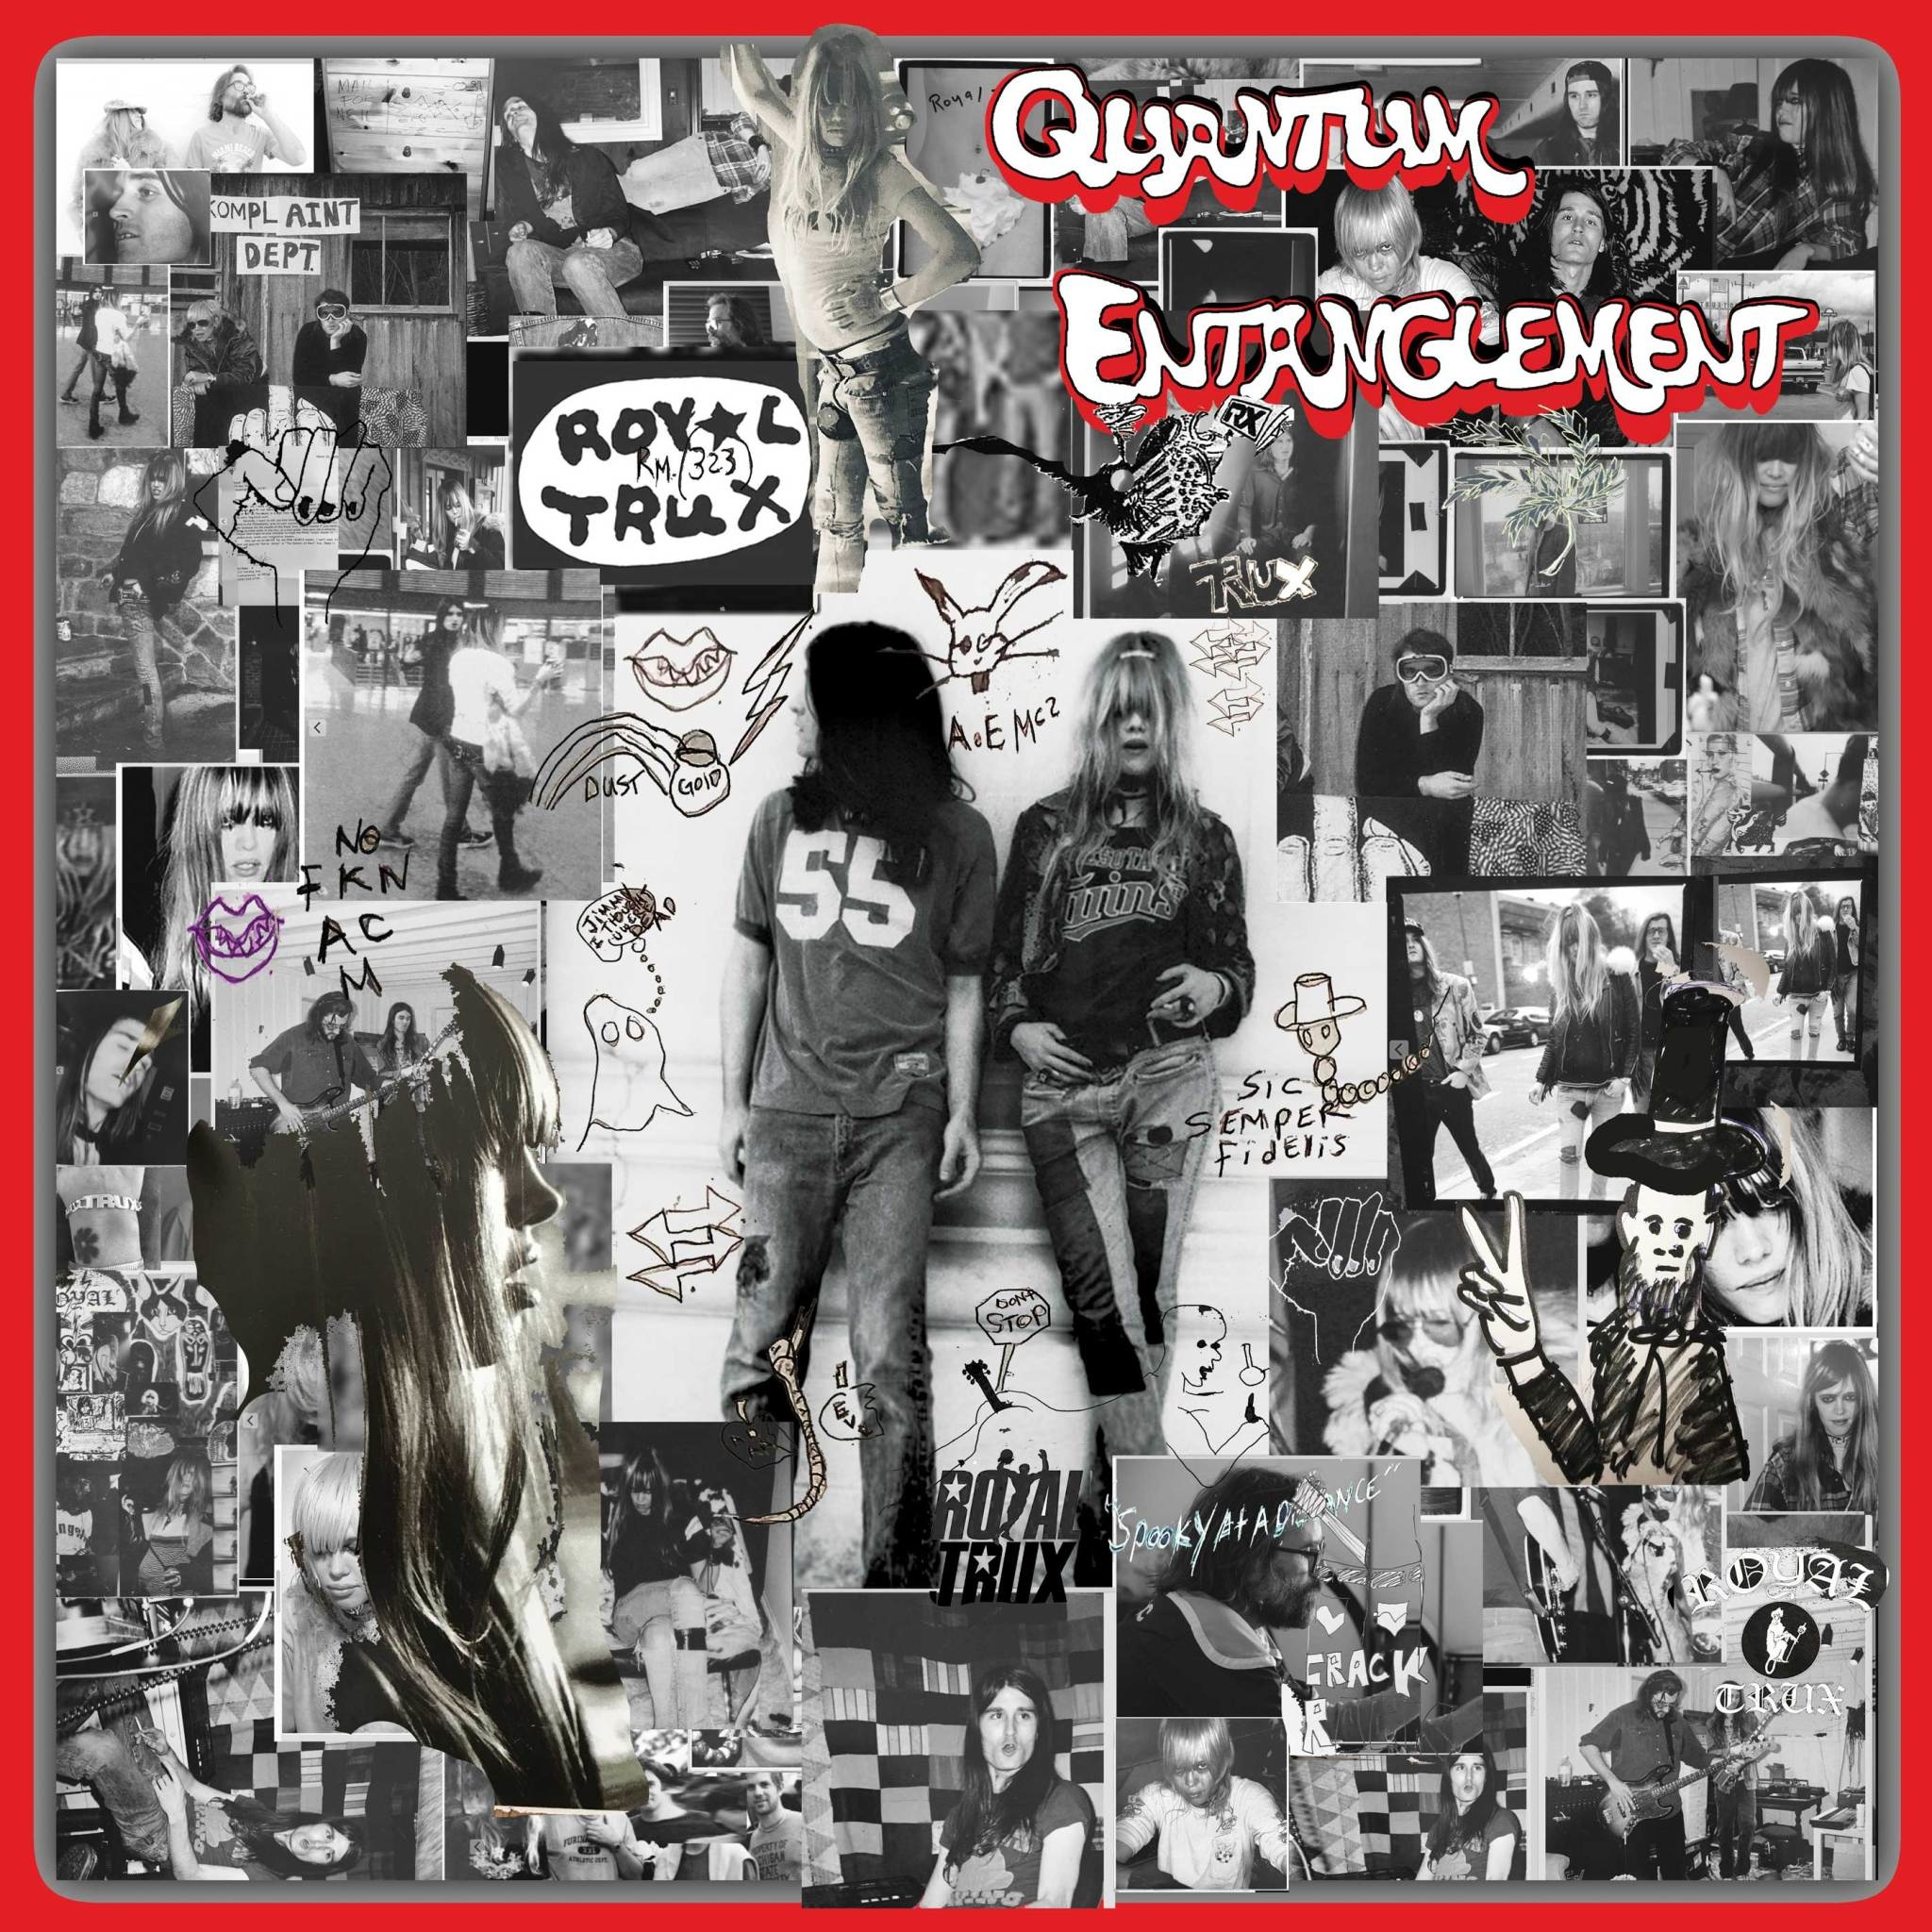 Royal Trux - Quantum Entanglement [LP] (Yellow Vinyl, limited to 800, indie advance-exclusive)